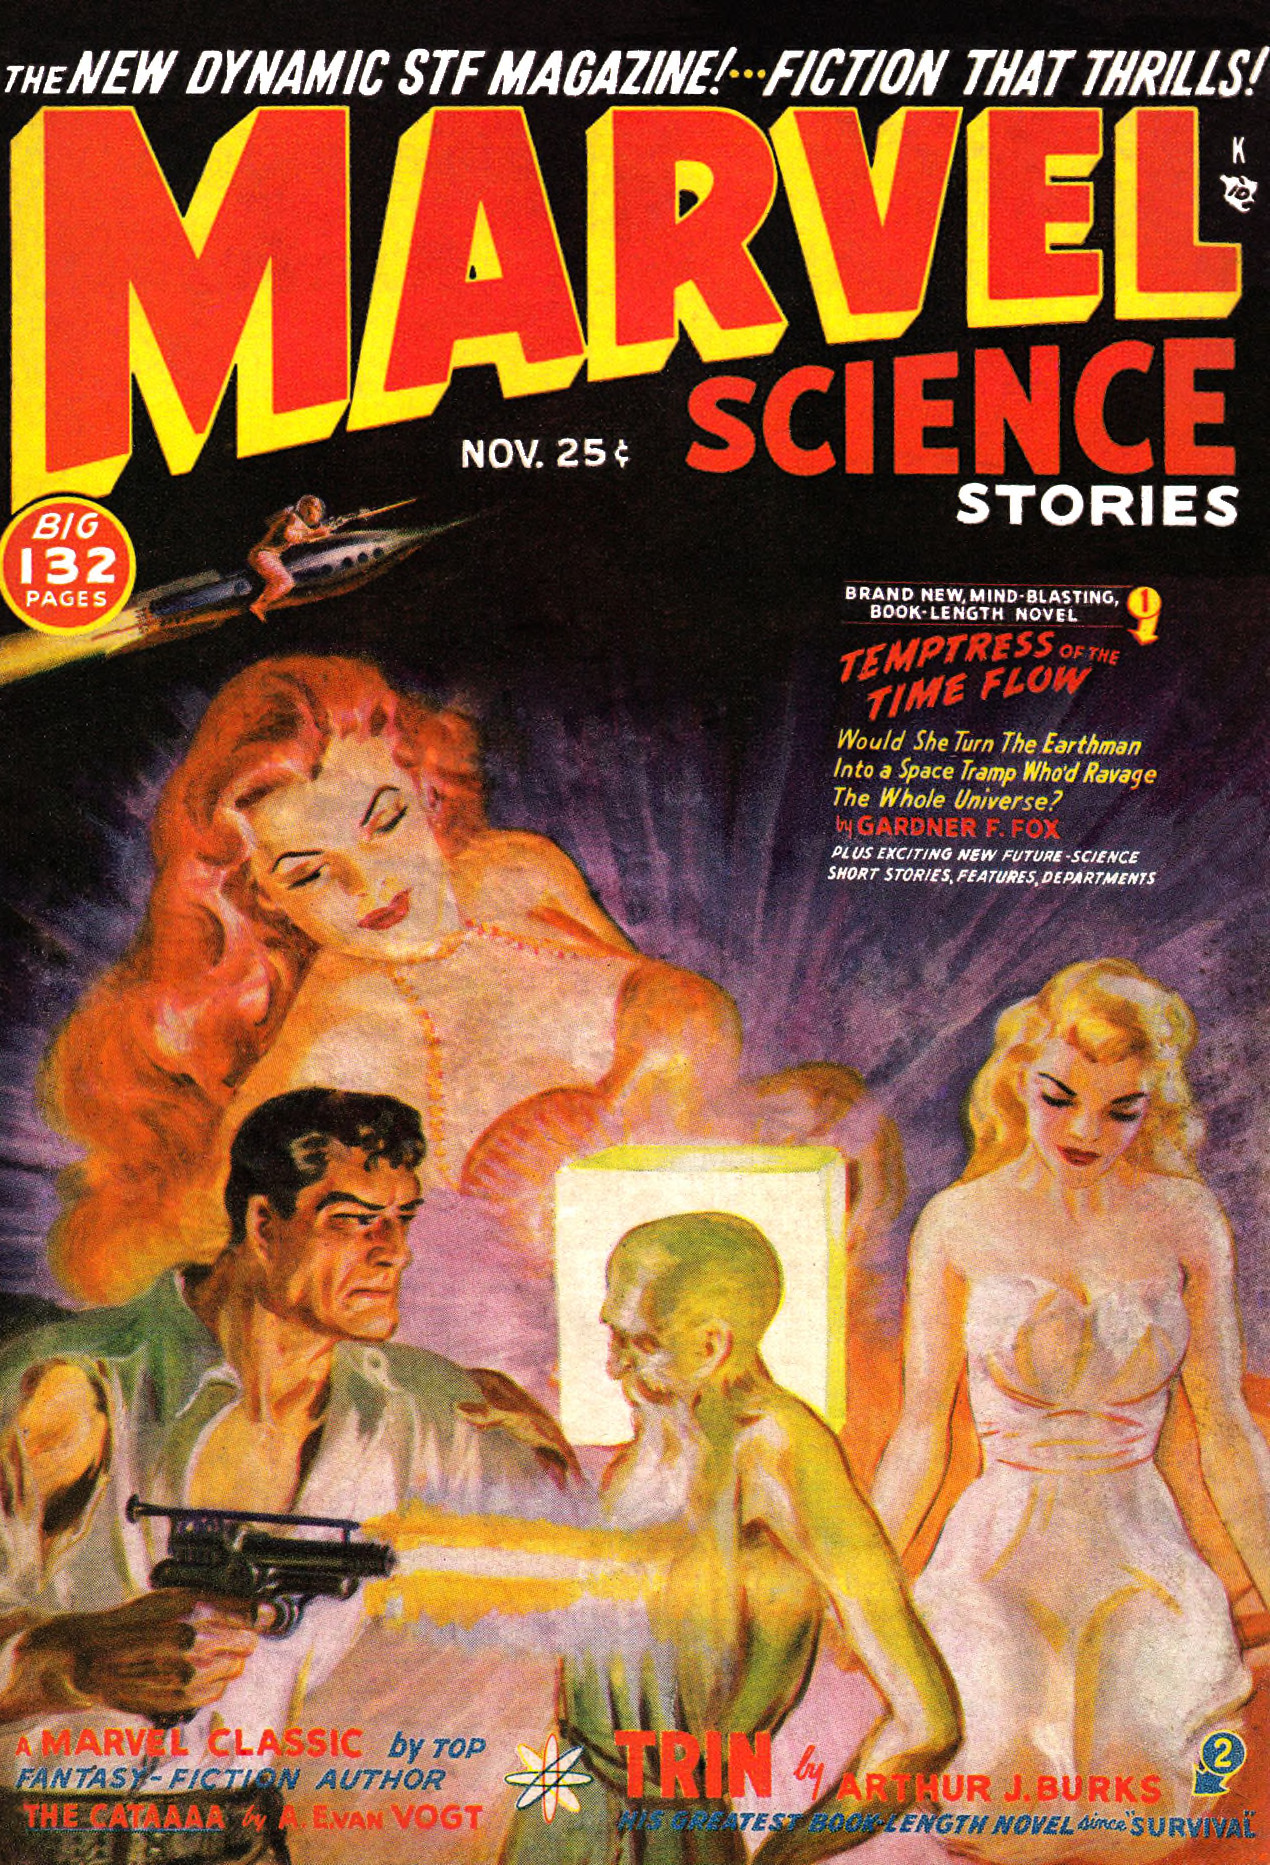 A cover by Norman Saunders for the November 1950 cover of Marvel Science Stories.